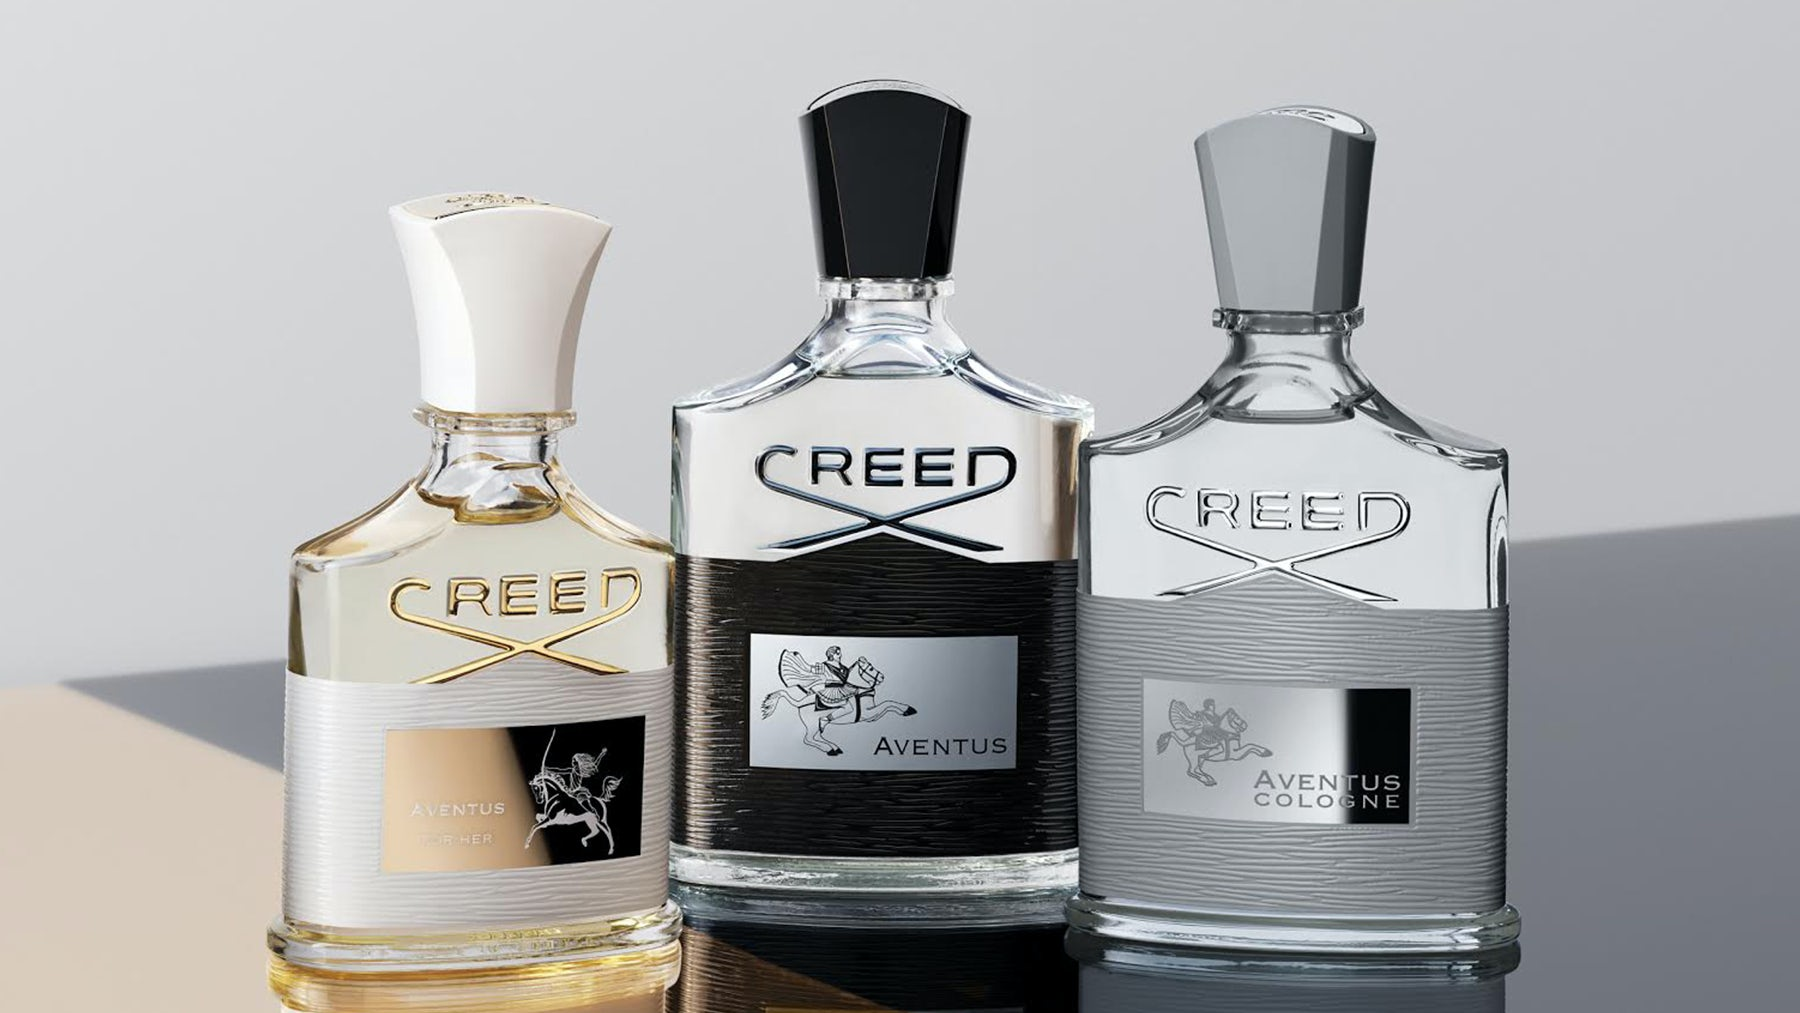 Creed colognes | Source: Courtesy